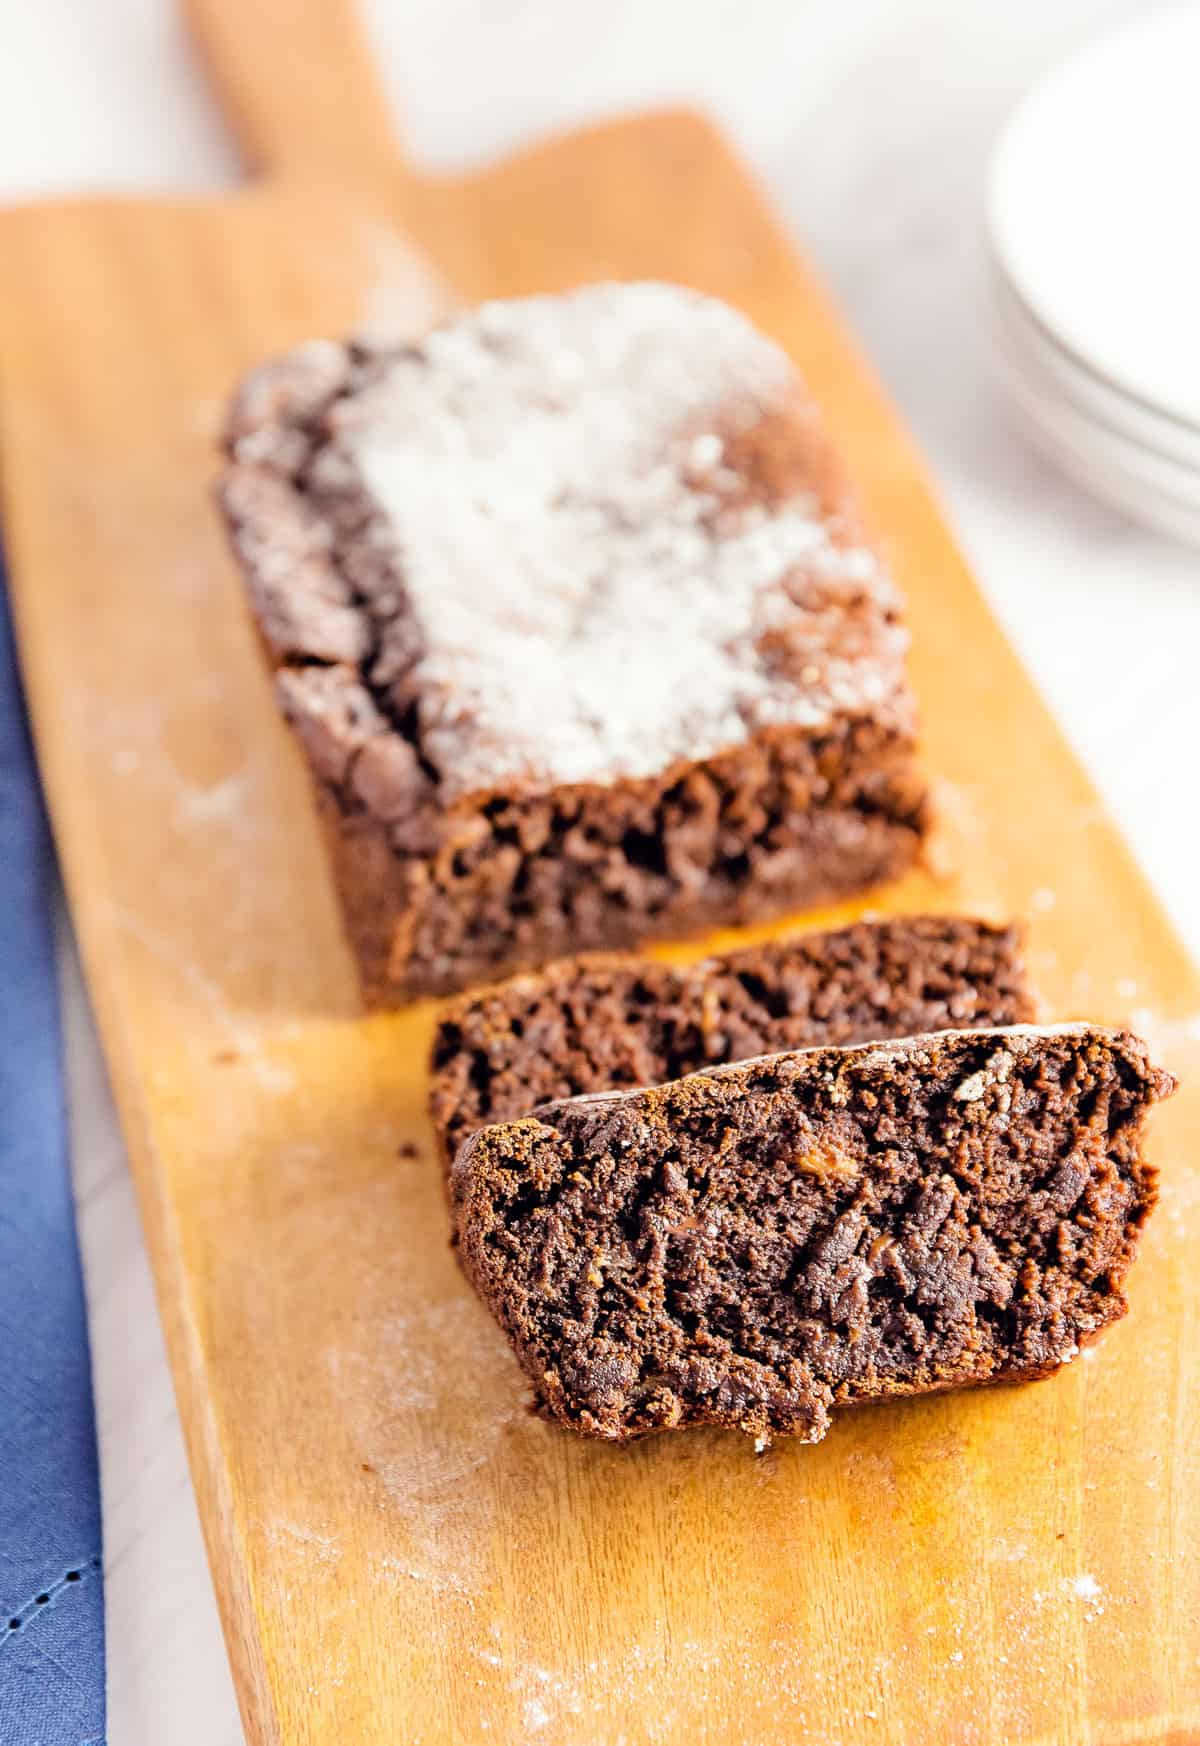 Banana walnut bread recipe food network kitchen food dinosauriensfo other banana walnut bread recipe food network kitchen foodbanana walnut bread recipes food network ukbanana walnut bread genius kitchen have your food forumfinder Images